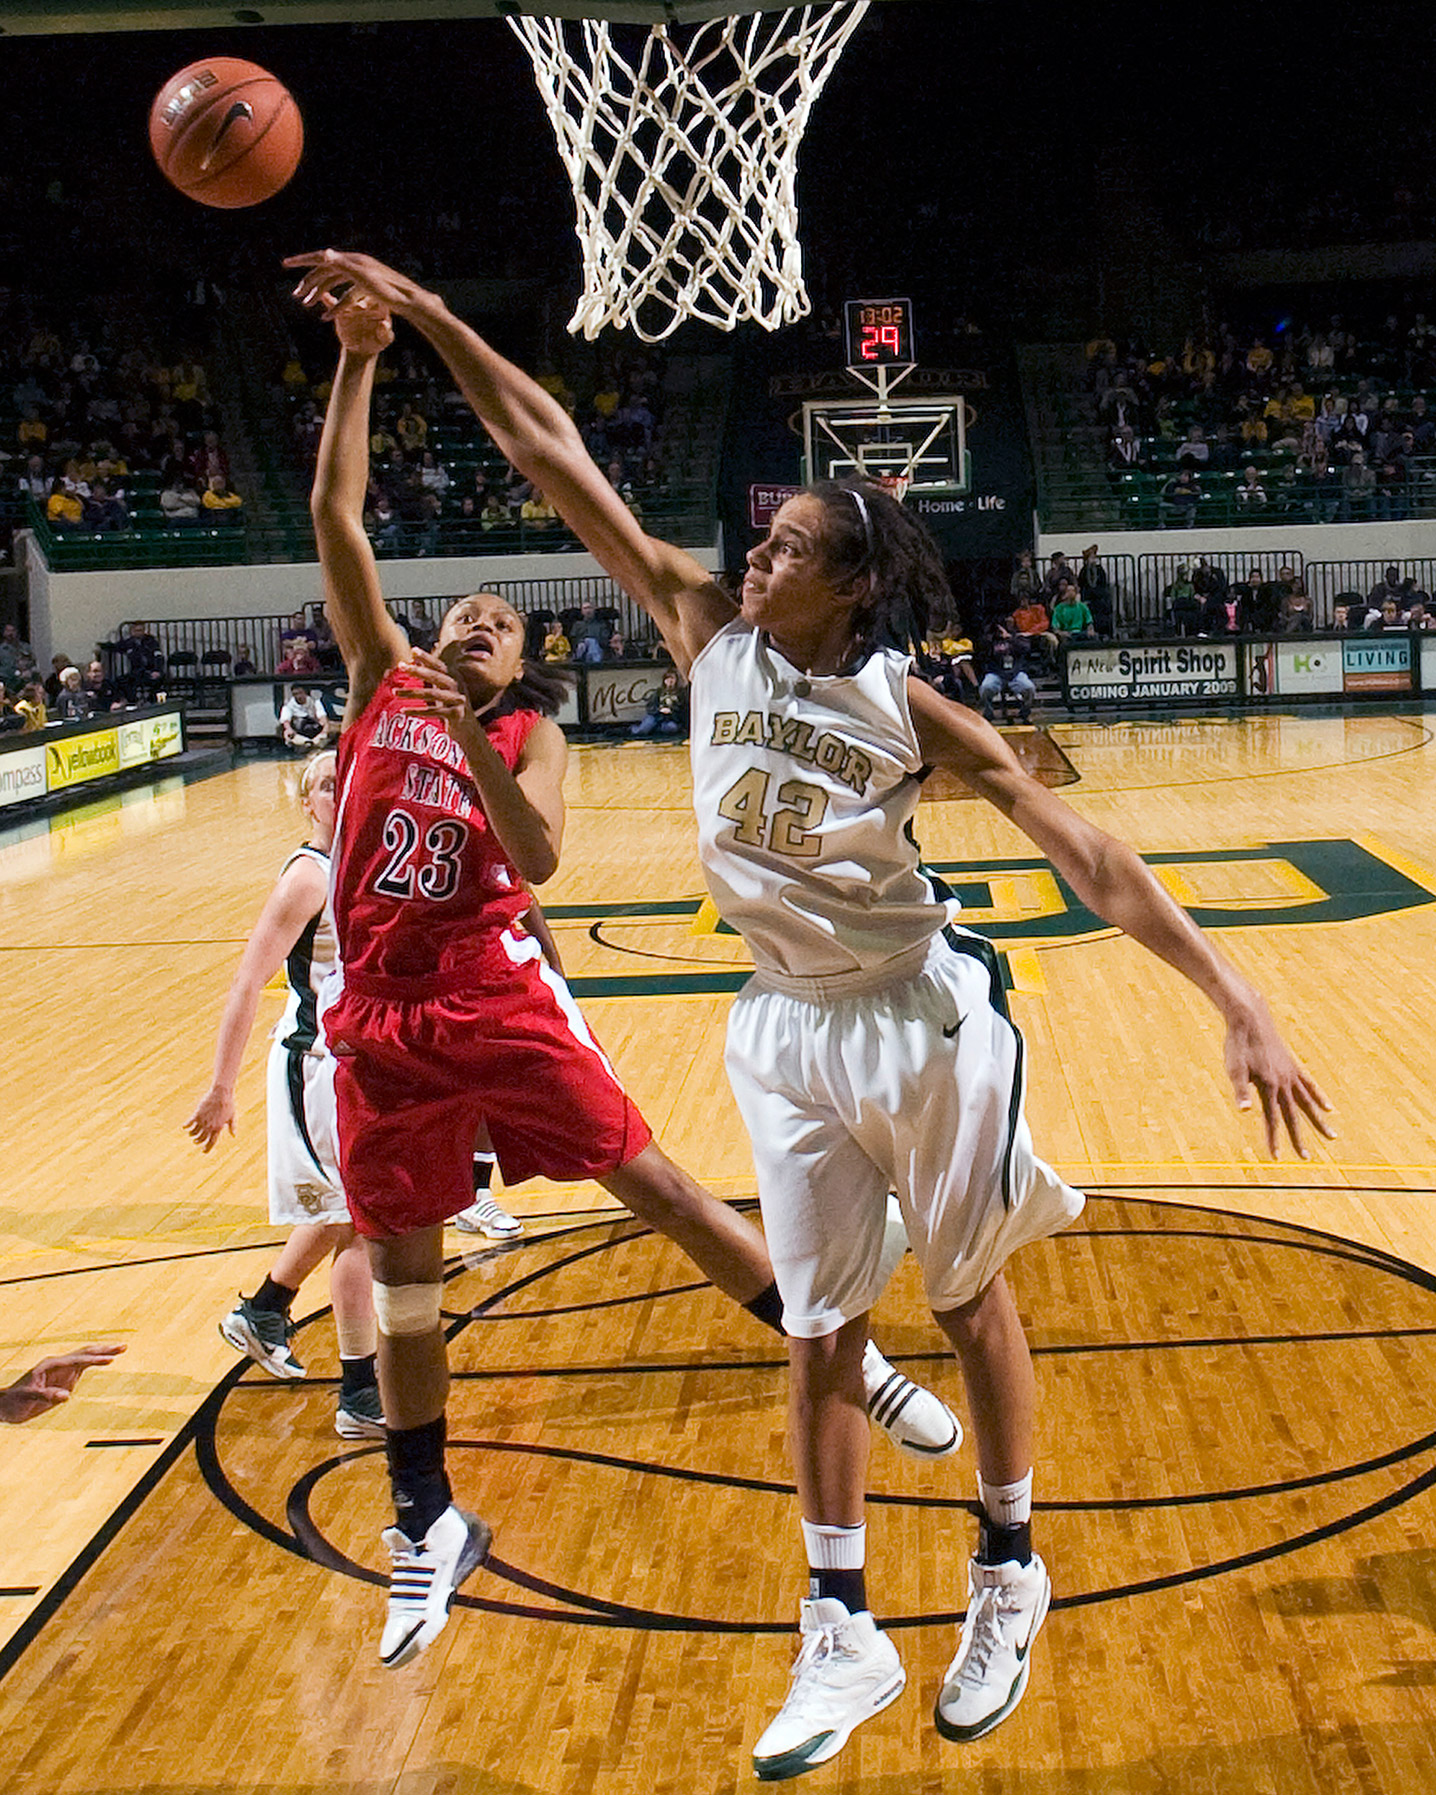 Nobody -- man or woman -- has more blocks in NCAA basketball history than Brittney Griner. She finished her career at Baylor with 748 in 150 games.